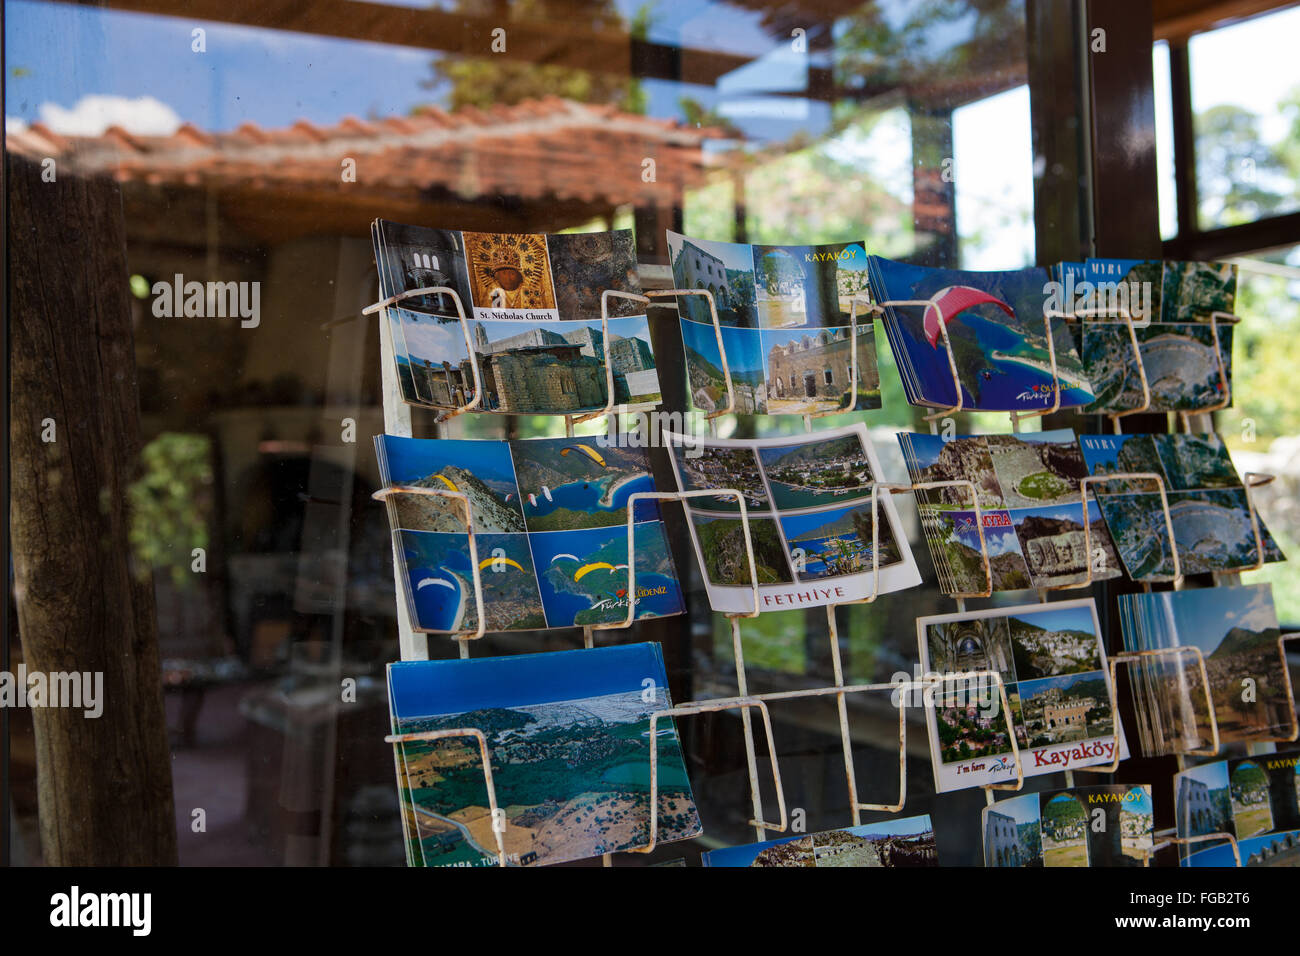 A stand of holiday postcards of Fethiye and Olu Deniz outside a shop, Turkey. - Stock Image